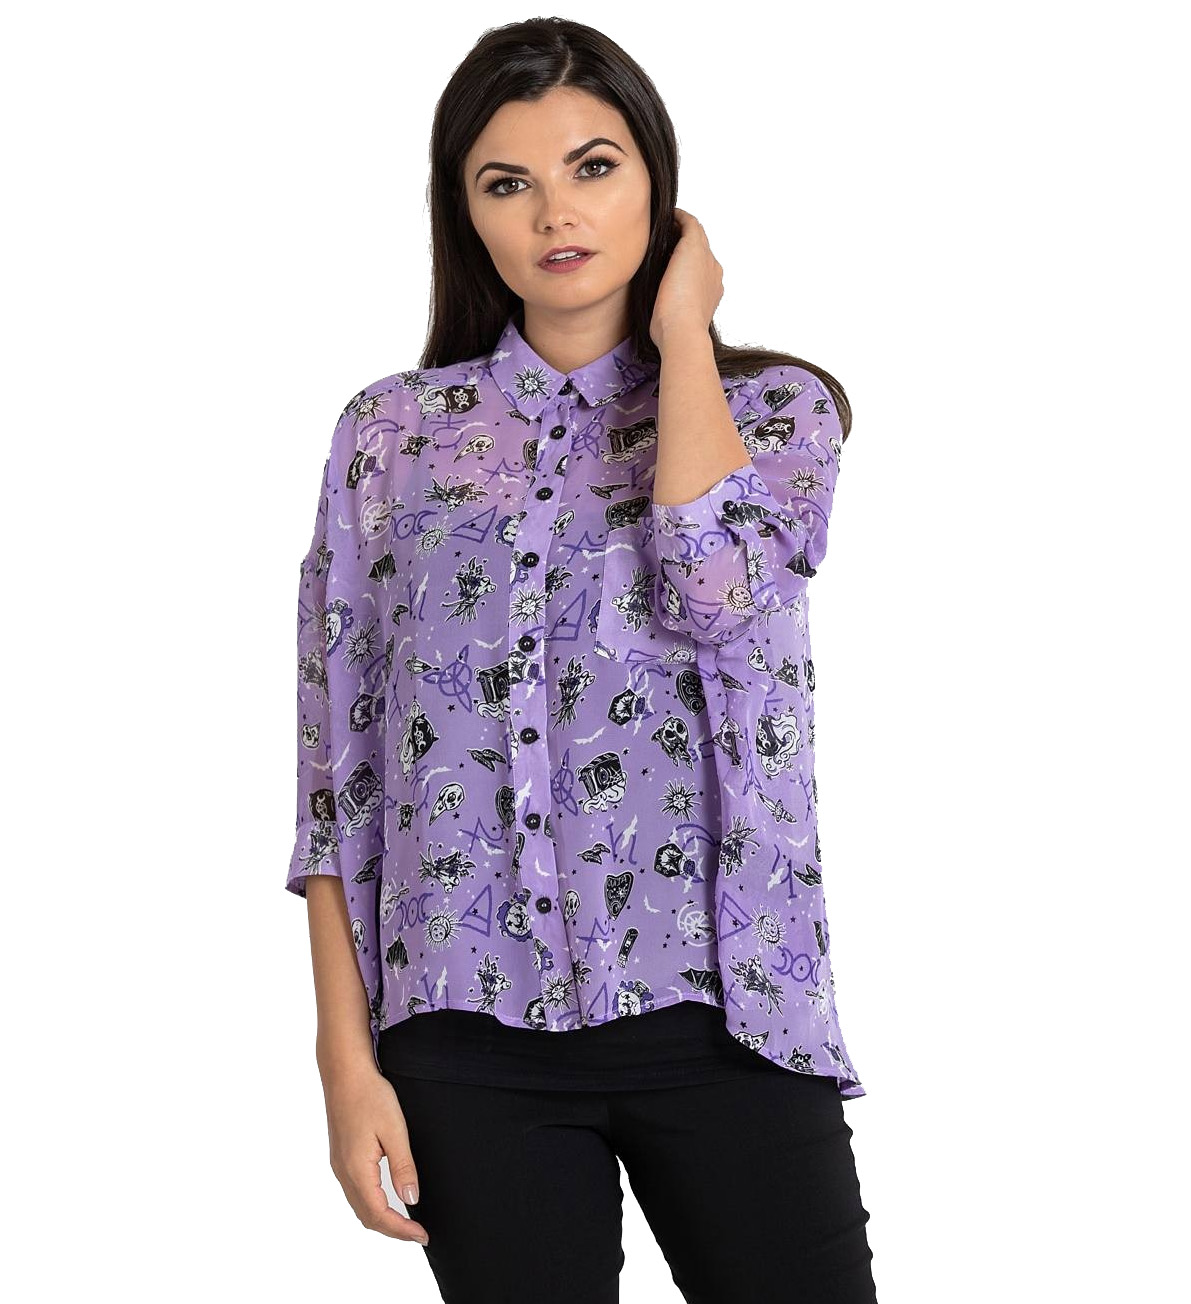 Hell-Bunny-Shirt-Top-Gothic-Witchy-ELSPETH-Lavender-Purple-Blouse-All-Sizes thumbnail 15